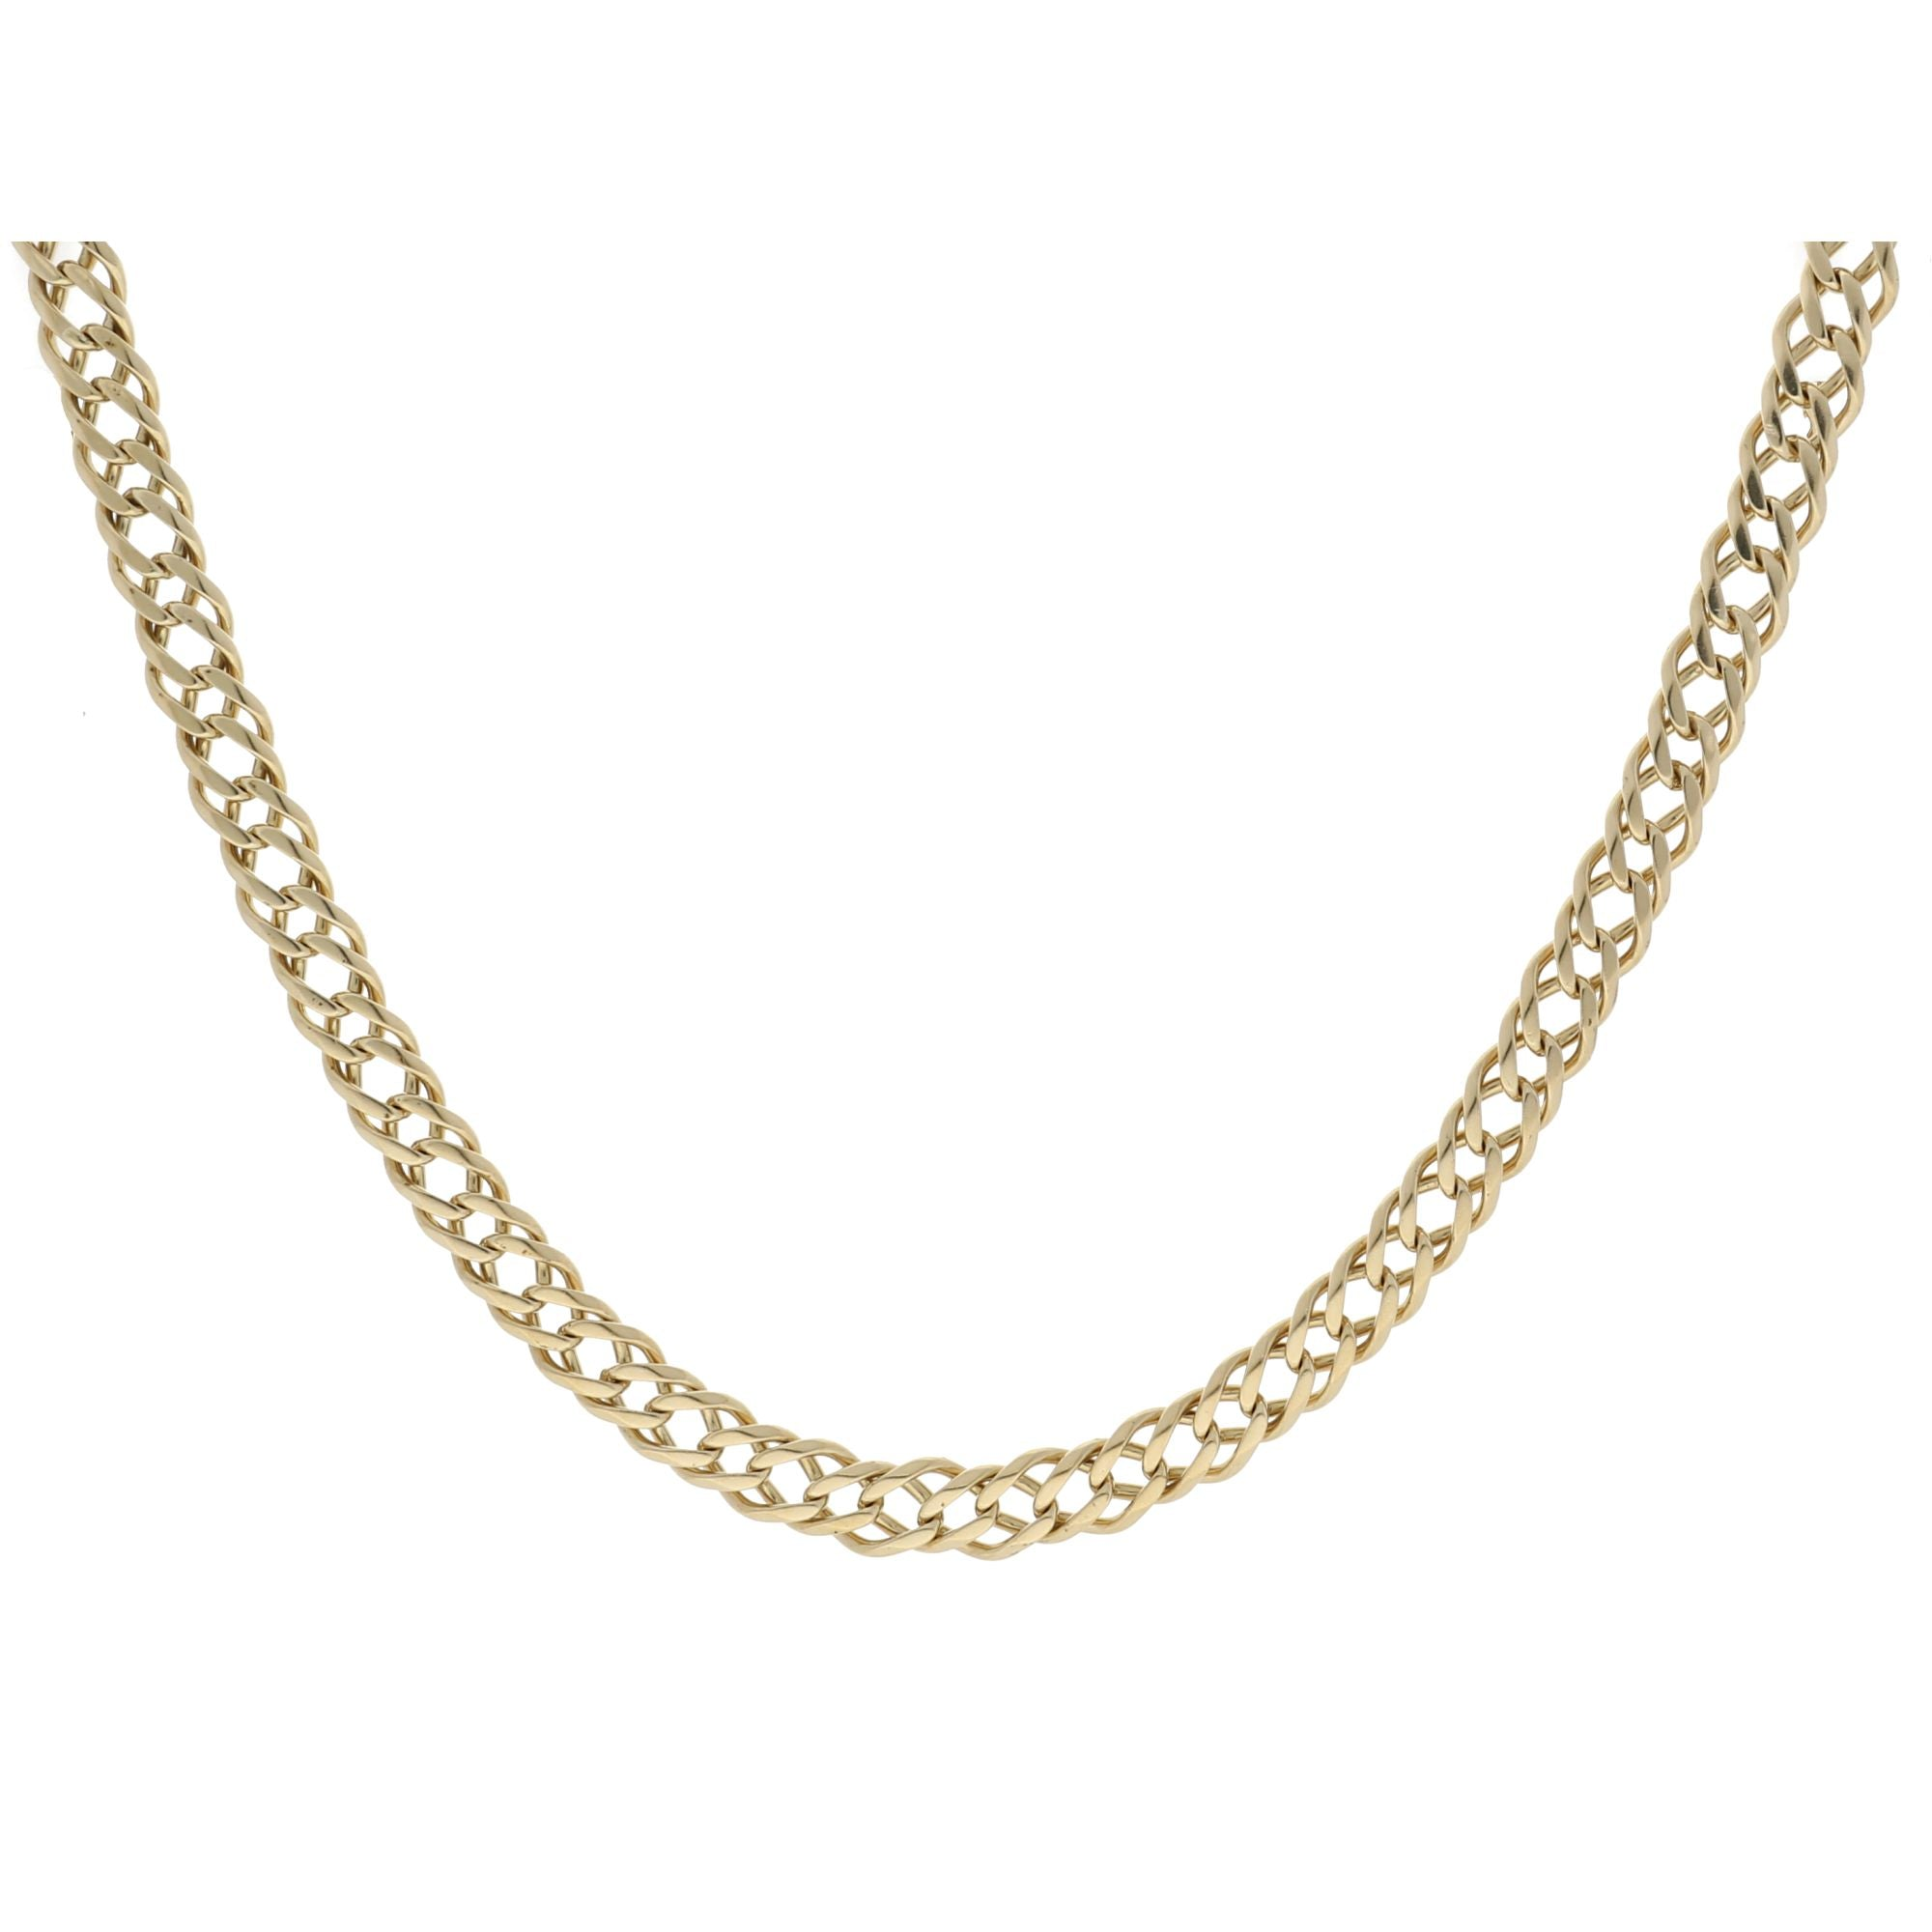 9ct Yellow Gold Mens Curb Chain 22 Inches 68L9&2